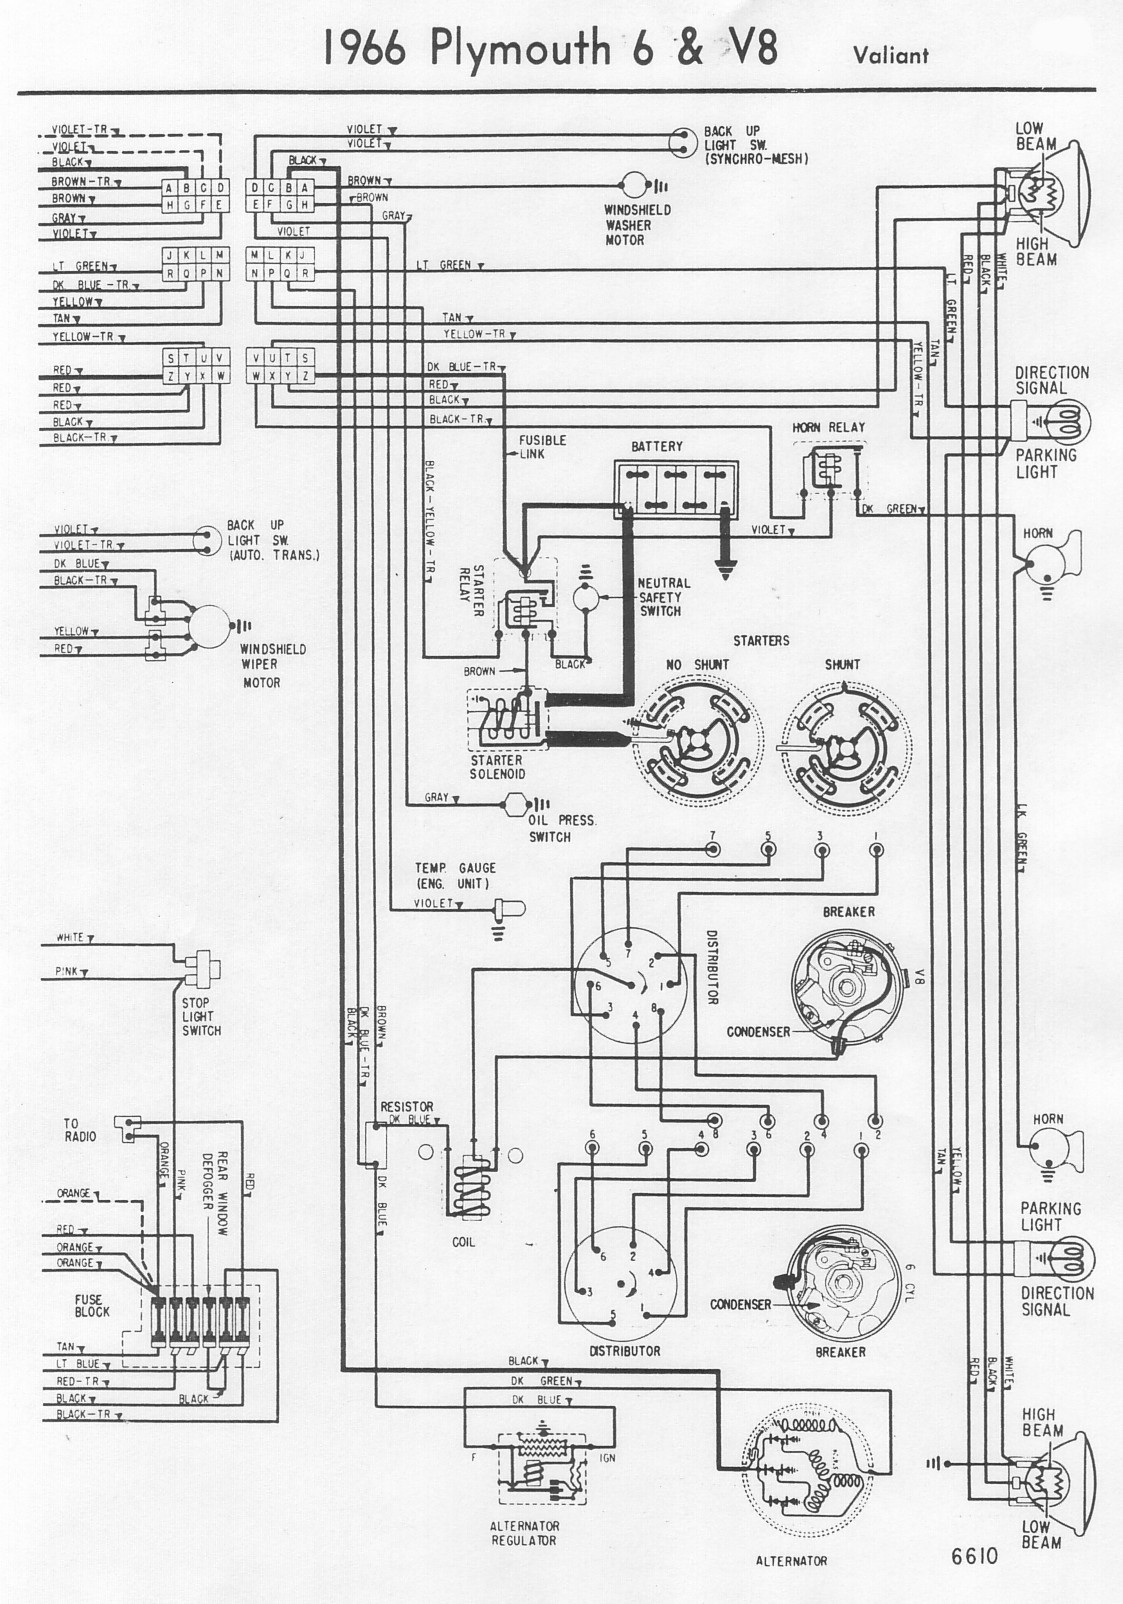 1973 valiant wiring diagram